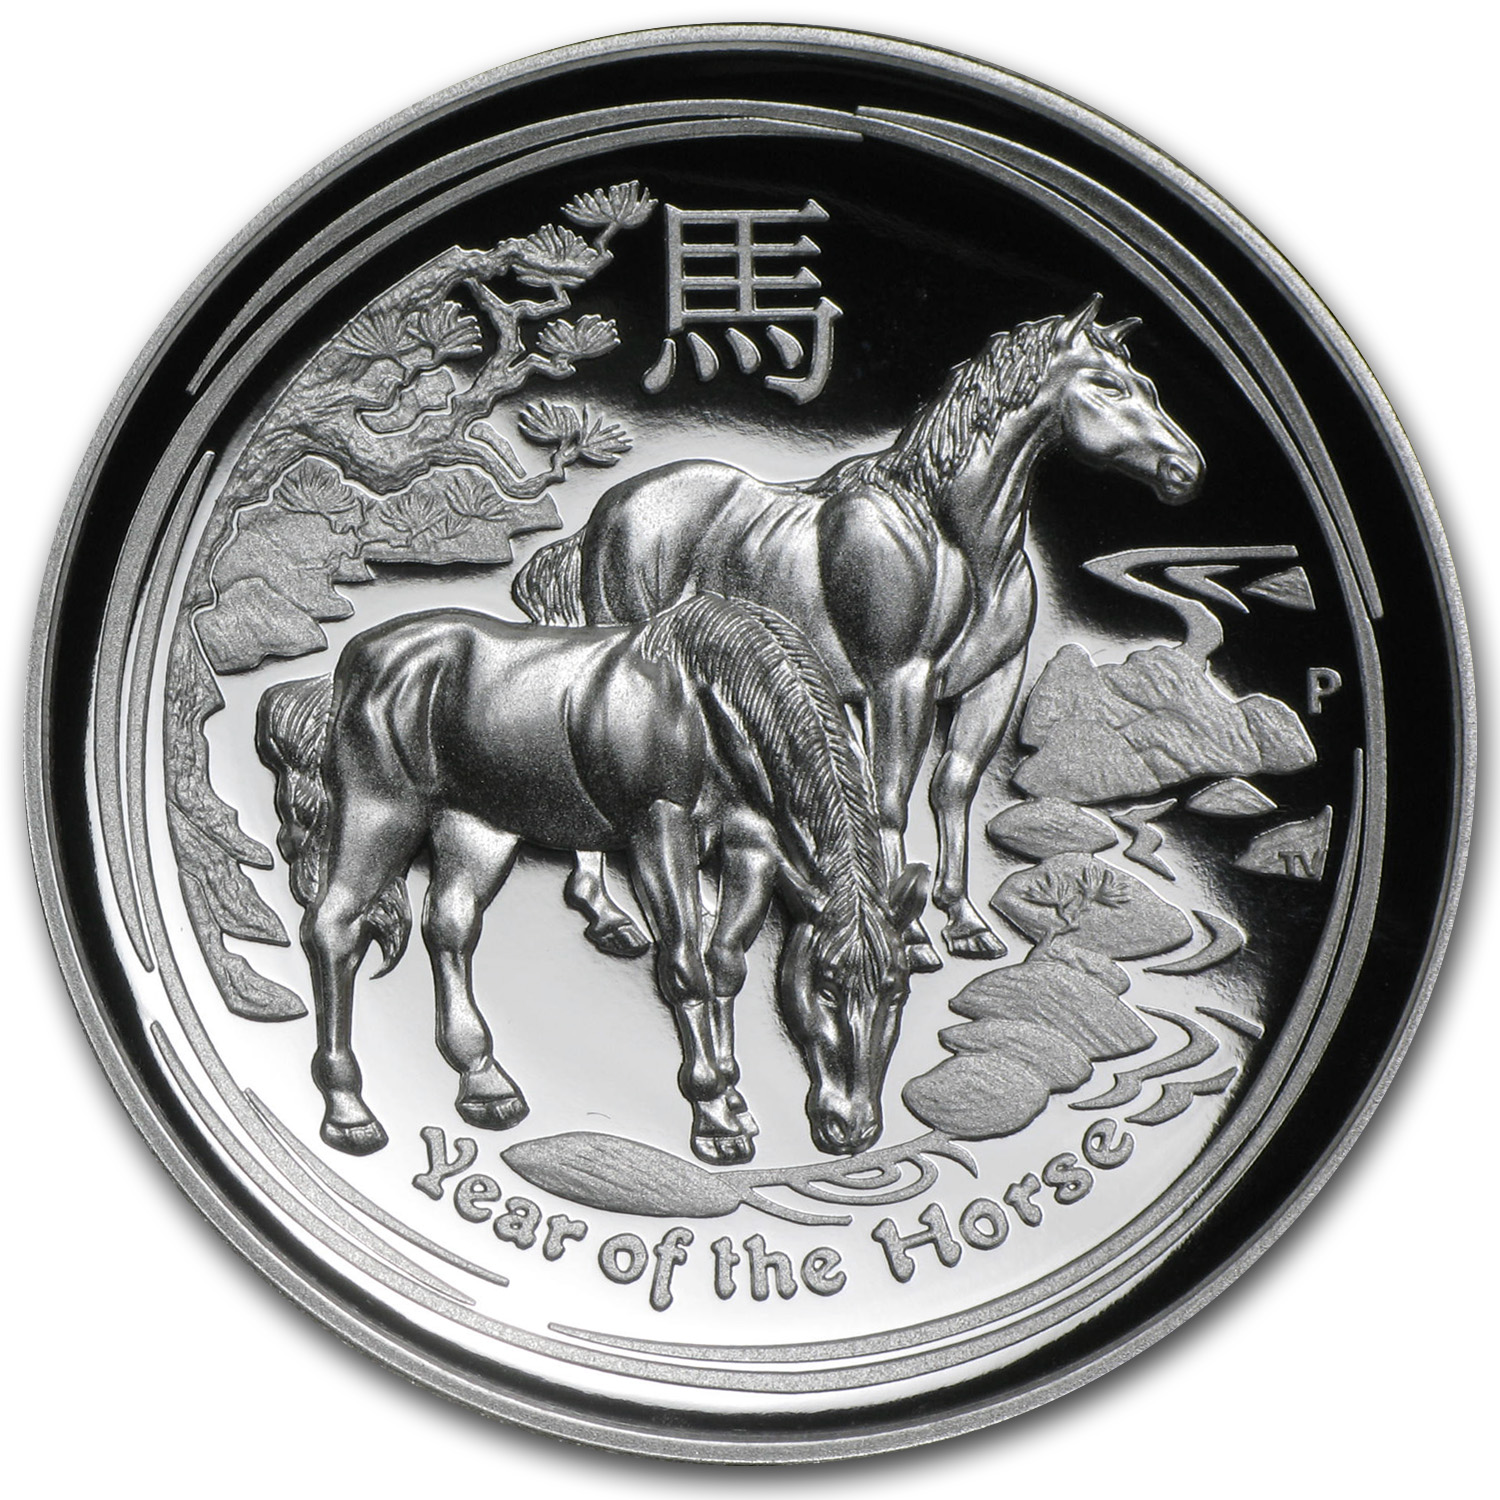 2014 Australia 1 oz Silver Lunar Horse Proof (High Relief)